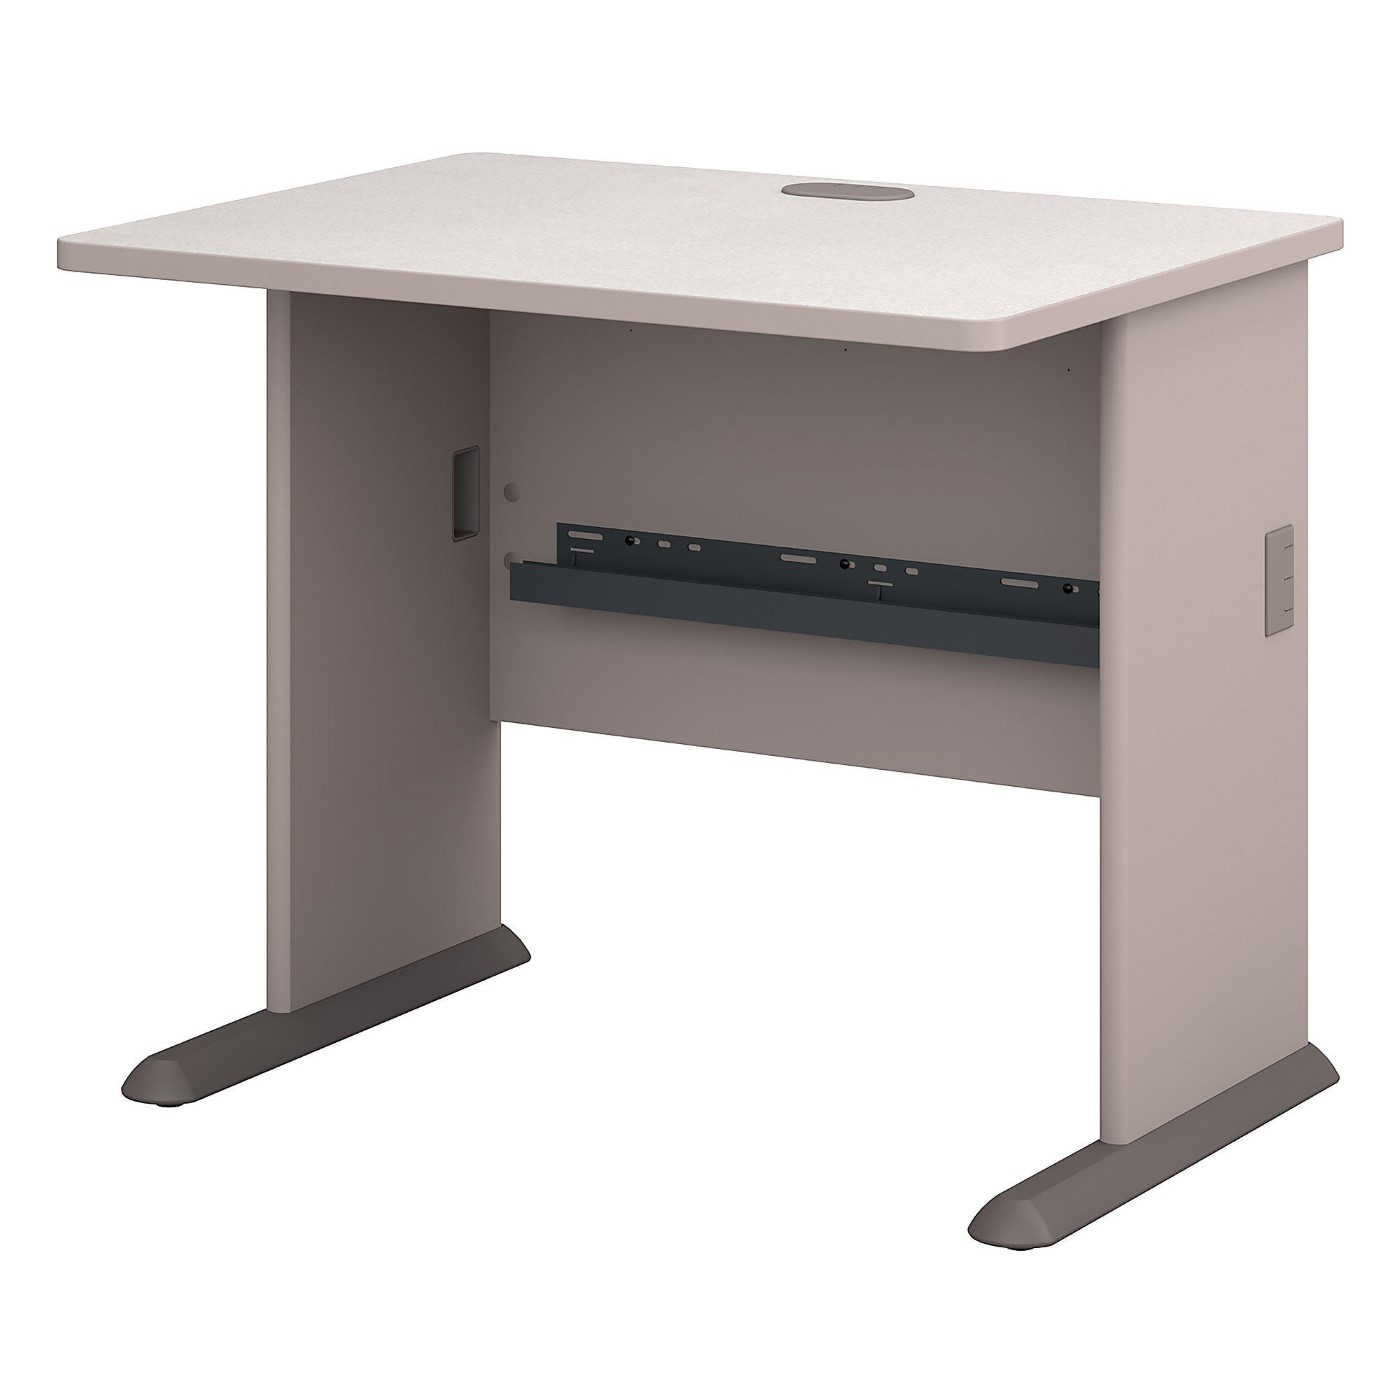 BUSH BUSINESS FURNITURE SERIES A 36W DESK. FREE SHIPPING  VIDEO BELOW.  SALE DEDUCT 10% MORE ENTER '10percent' IN COUPON CODE BOX WHILE CHECKING OUT.